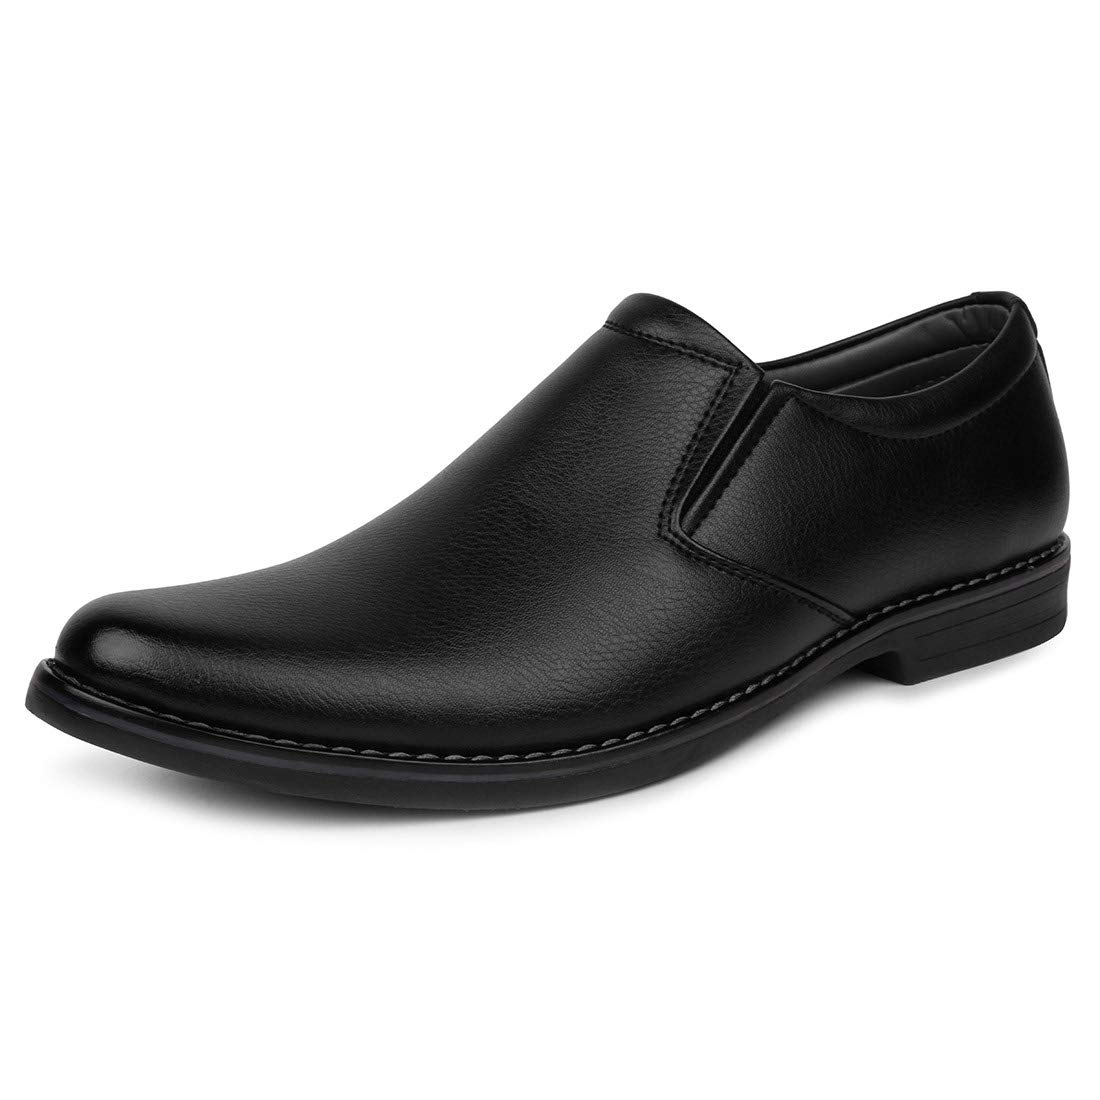 Slip-on formal shoes under 1000